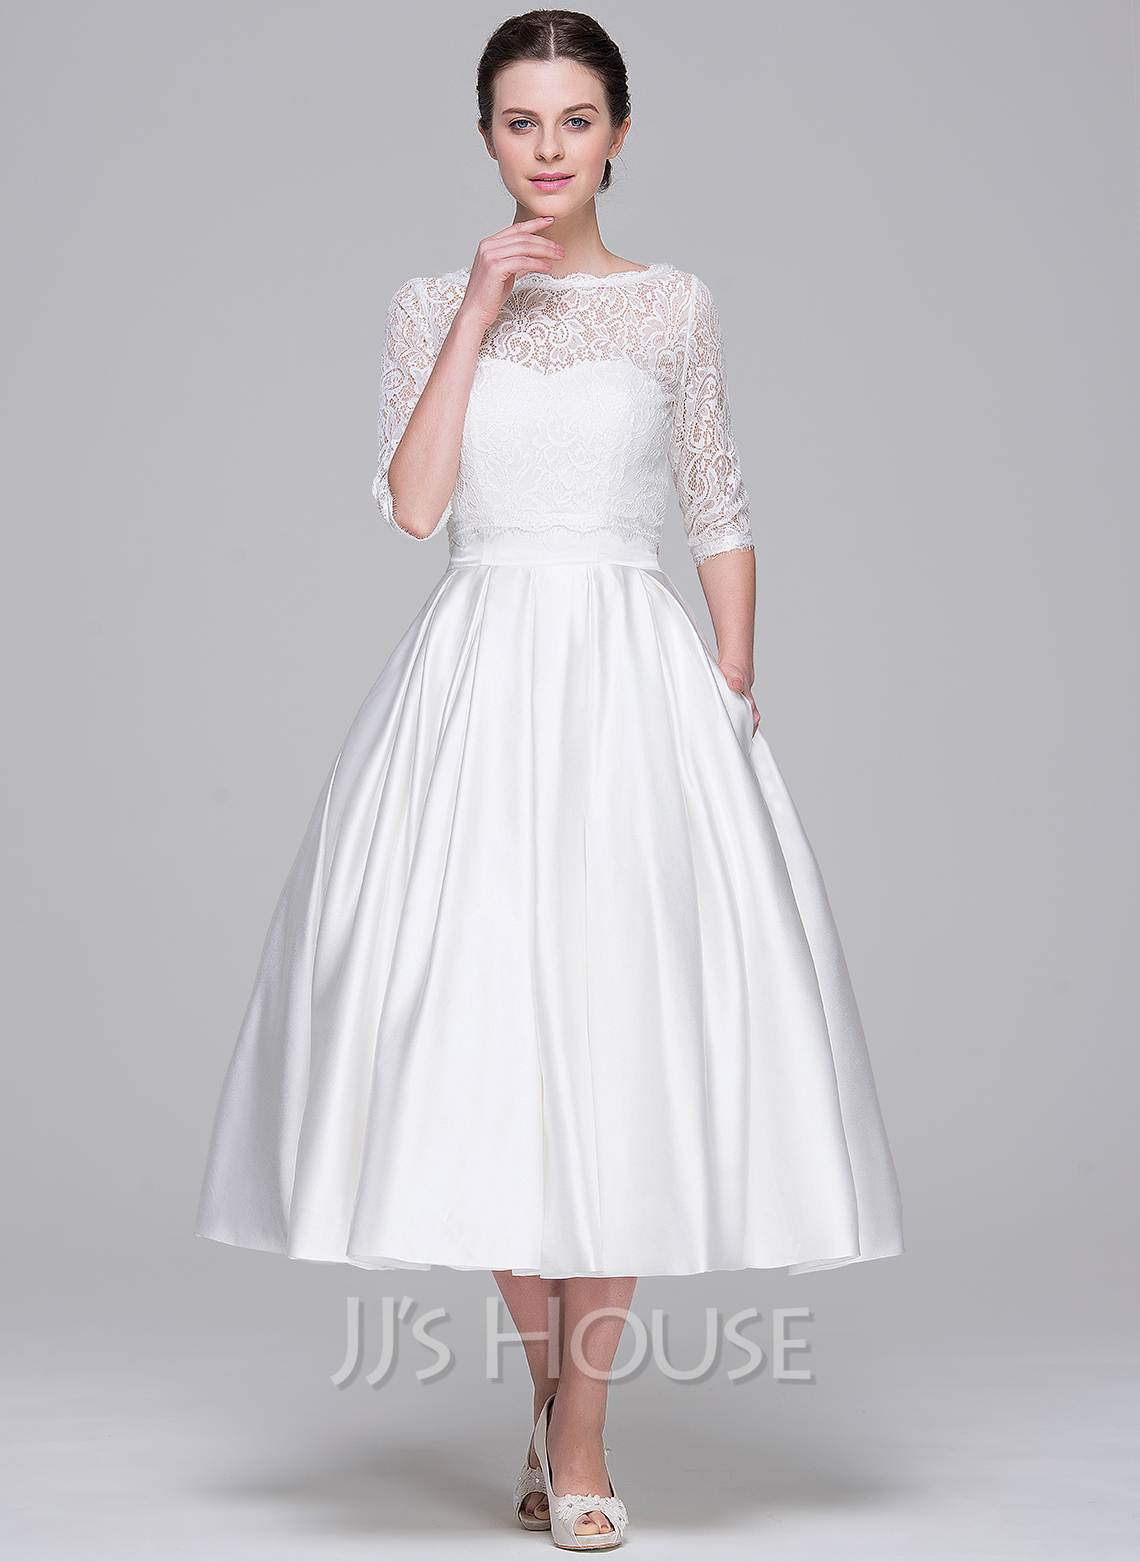 5047ea2af8b3 Ball-Gown Sweetheart Tea-Length Satin Wedding Dress With Pockets. Loading  zoom